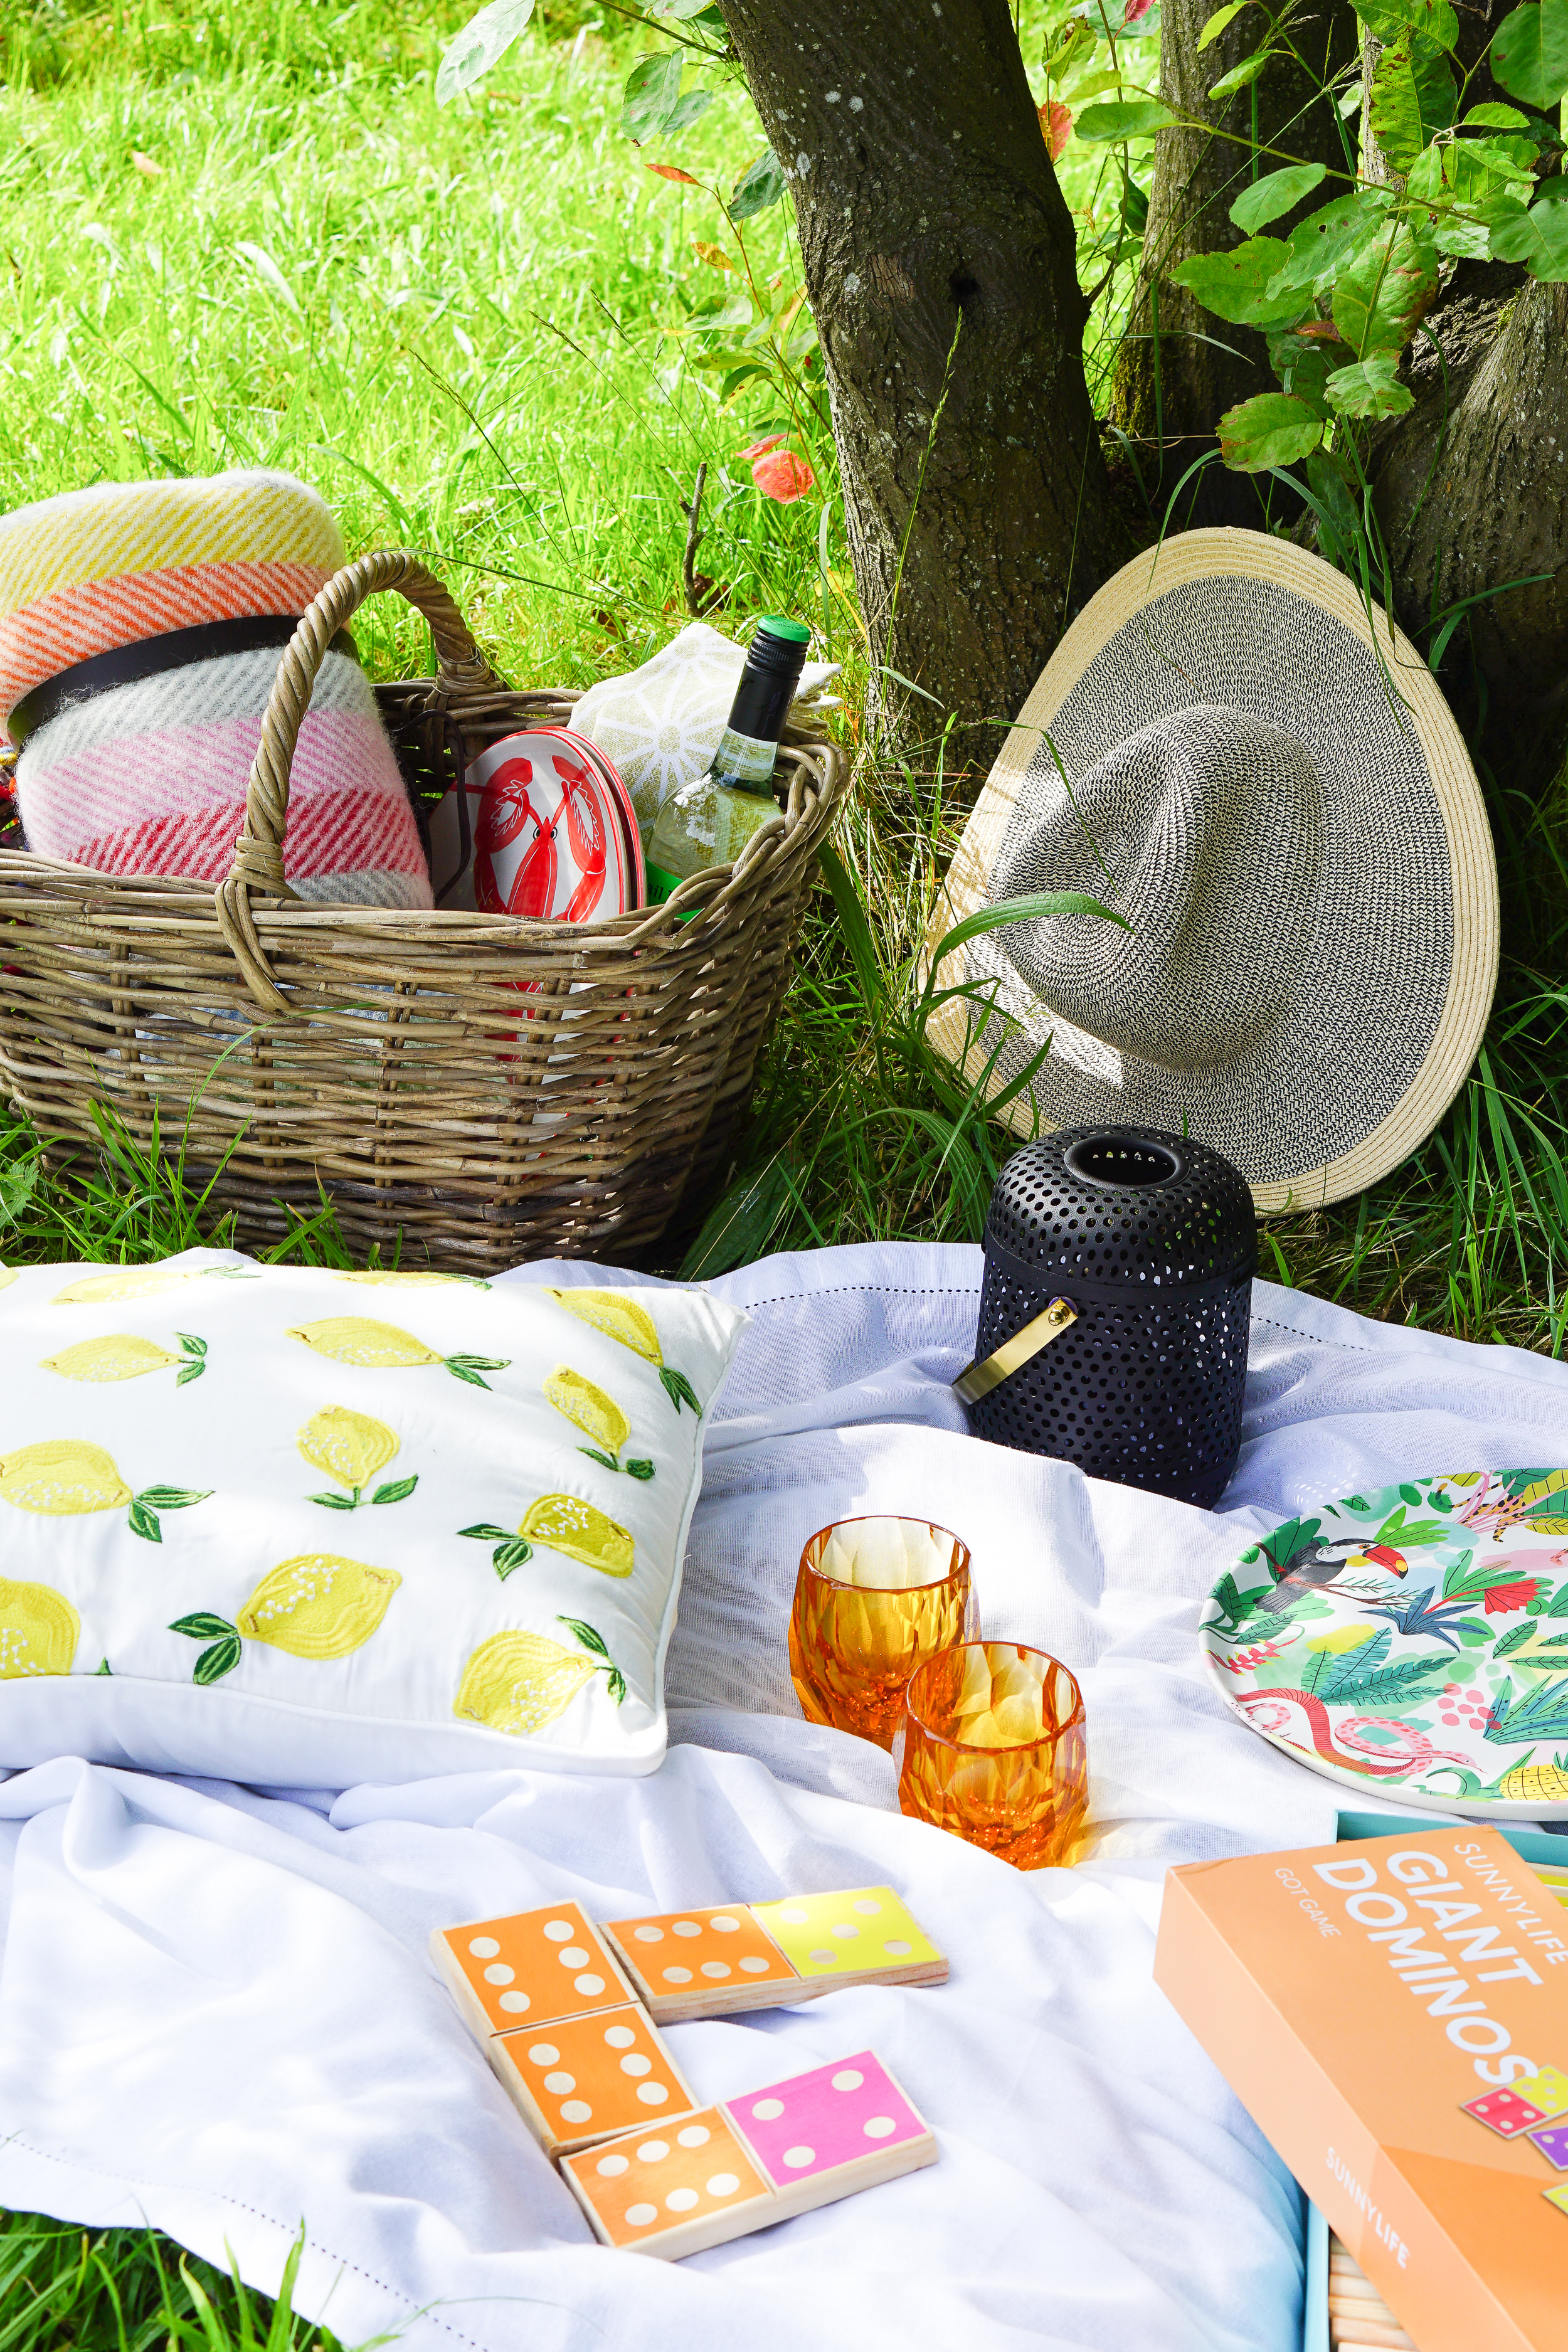 All good picnics start with the perfect basket (and chilled wine)